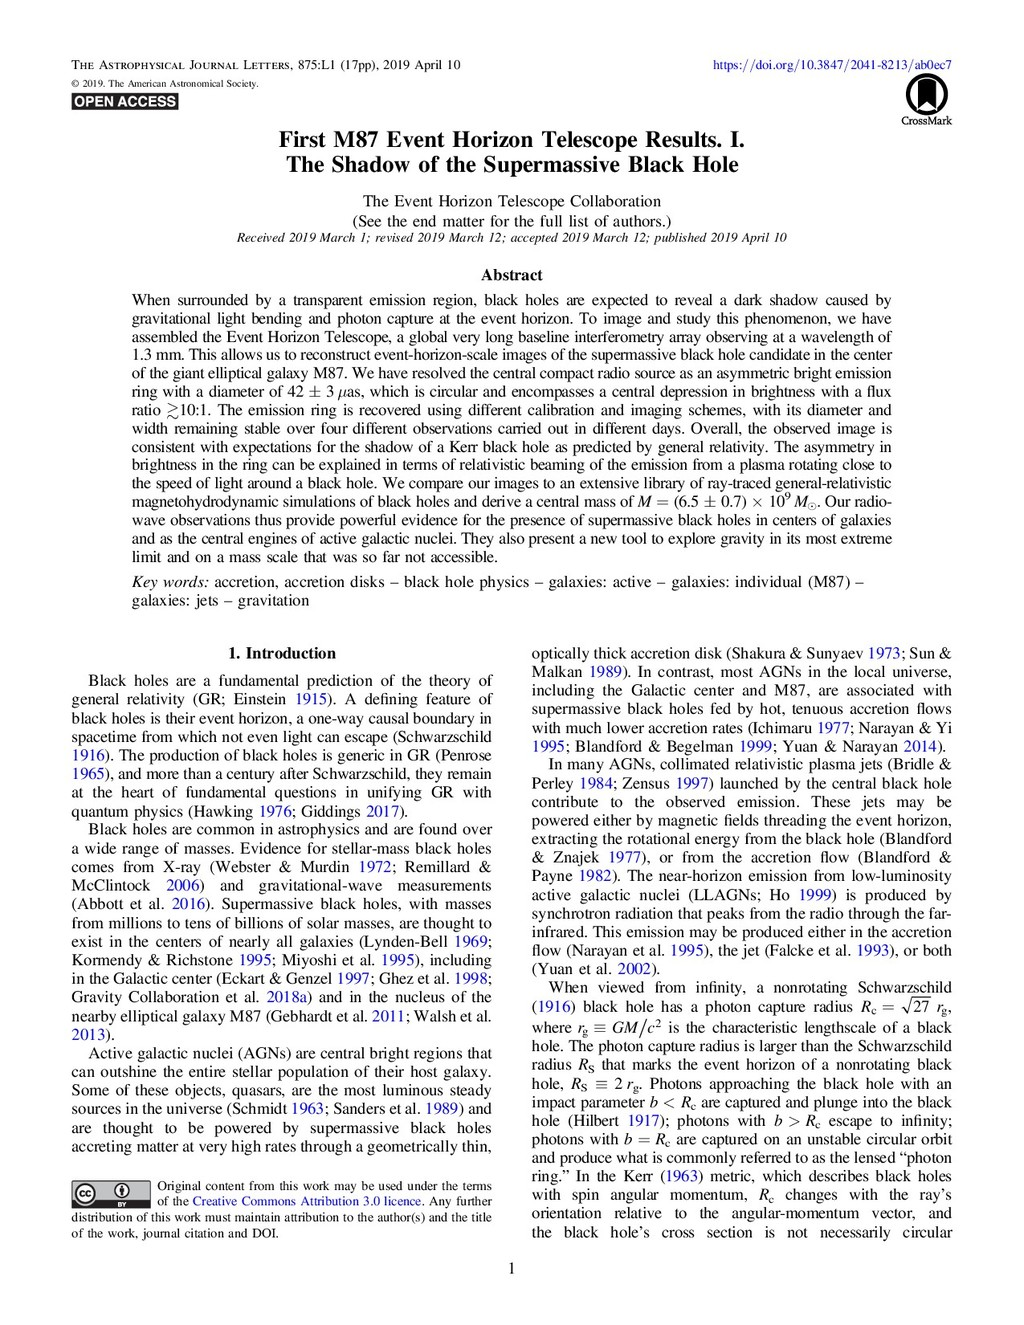 First M87 Event Horizon Telescope Results. I. T...